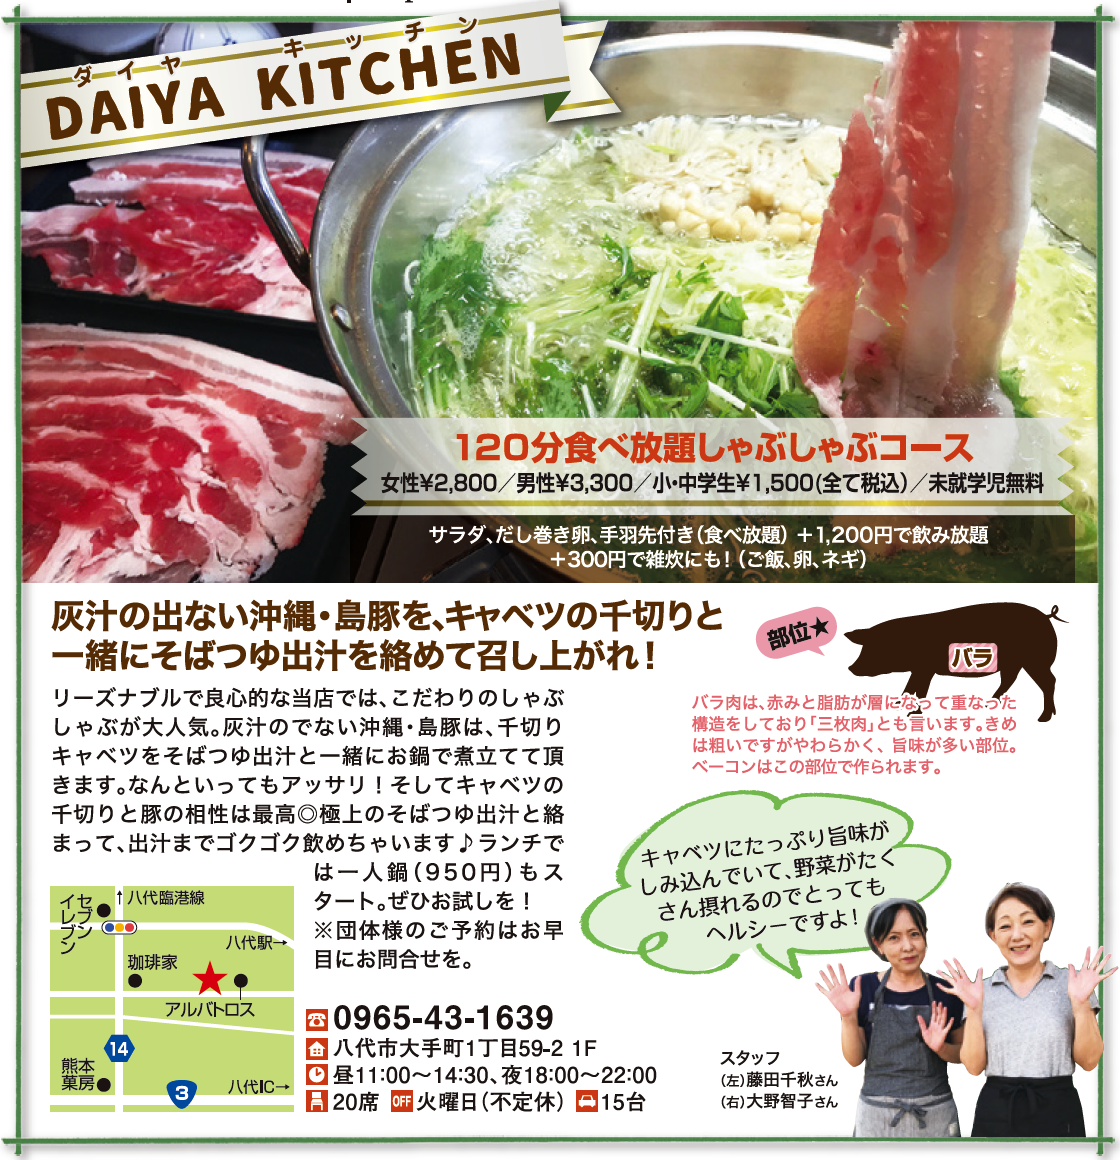 DAIYA KITCHEN